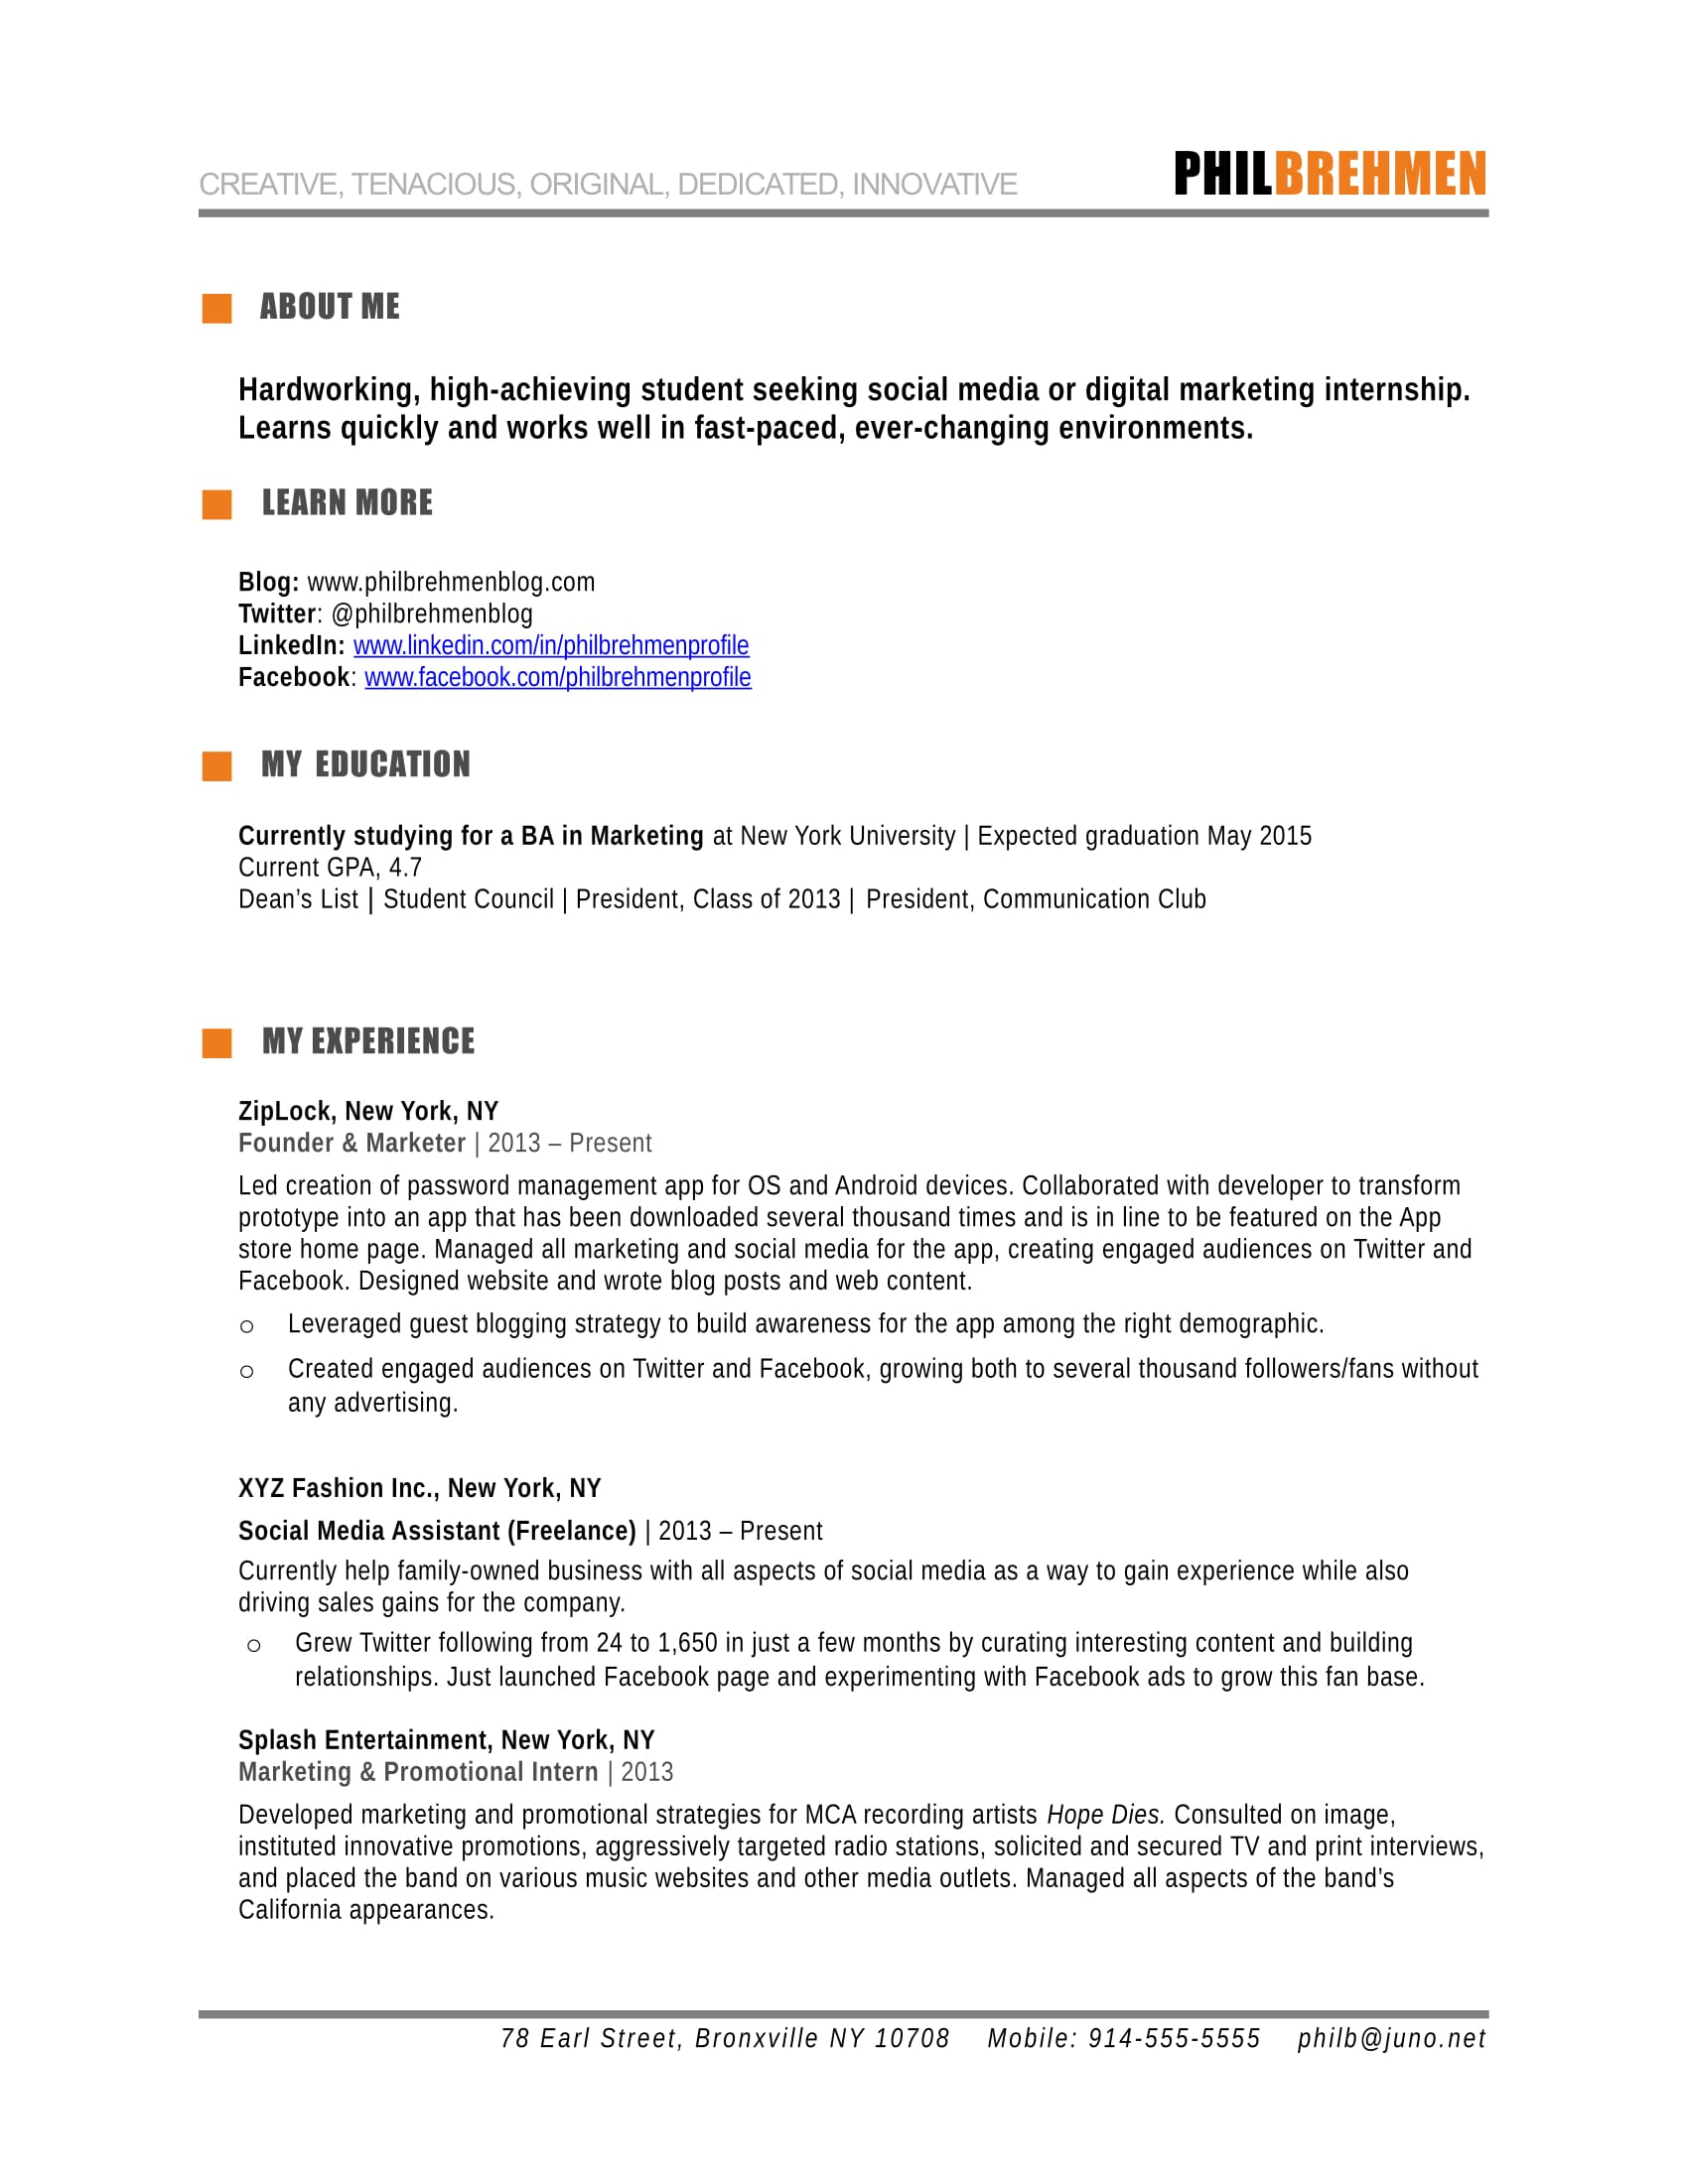 Inbound_Marketing_Intern_1 1  Digital Marketing Resumes